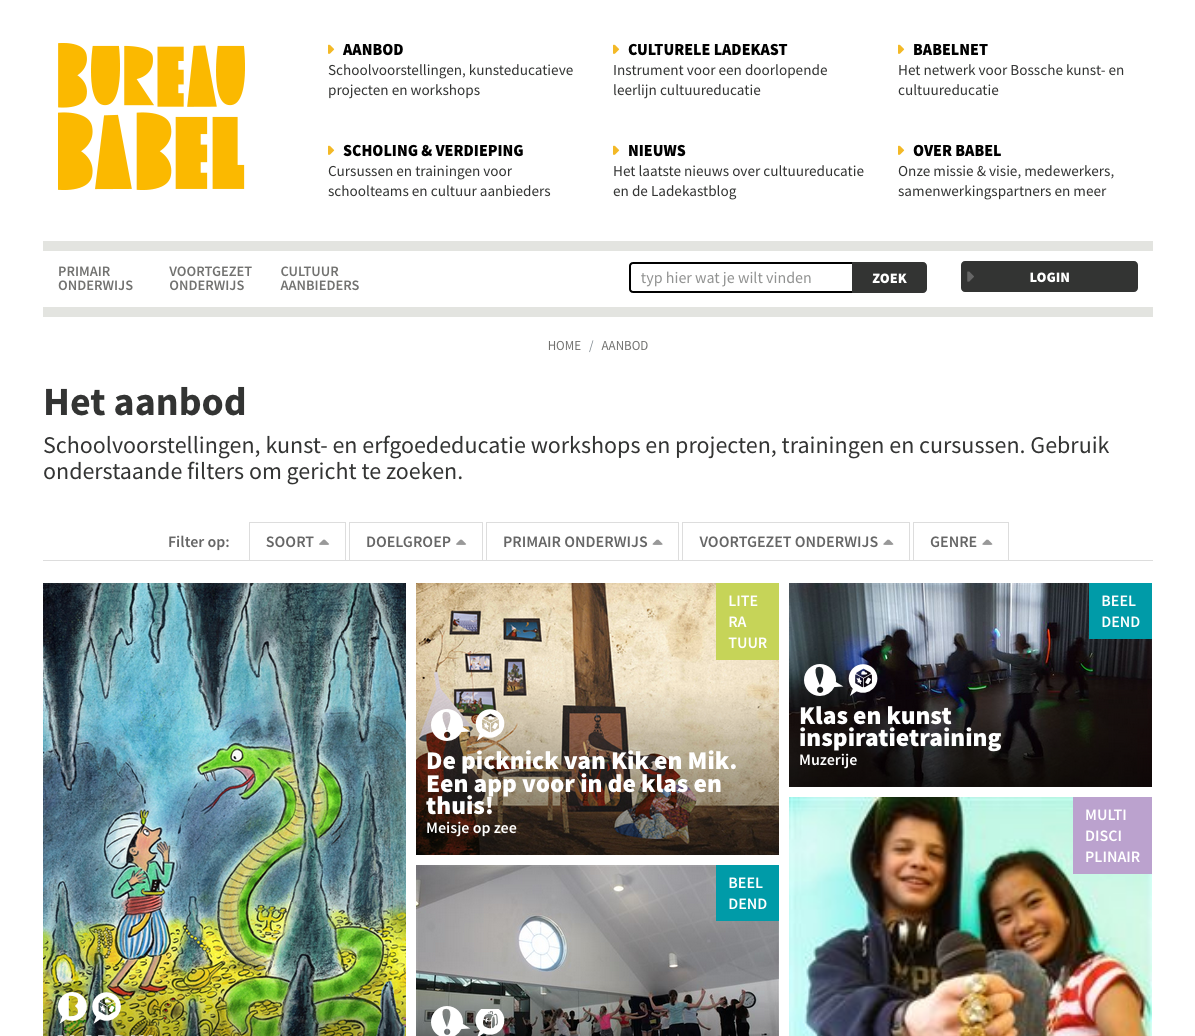 Website Bureau Babel